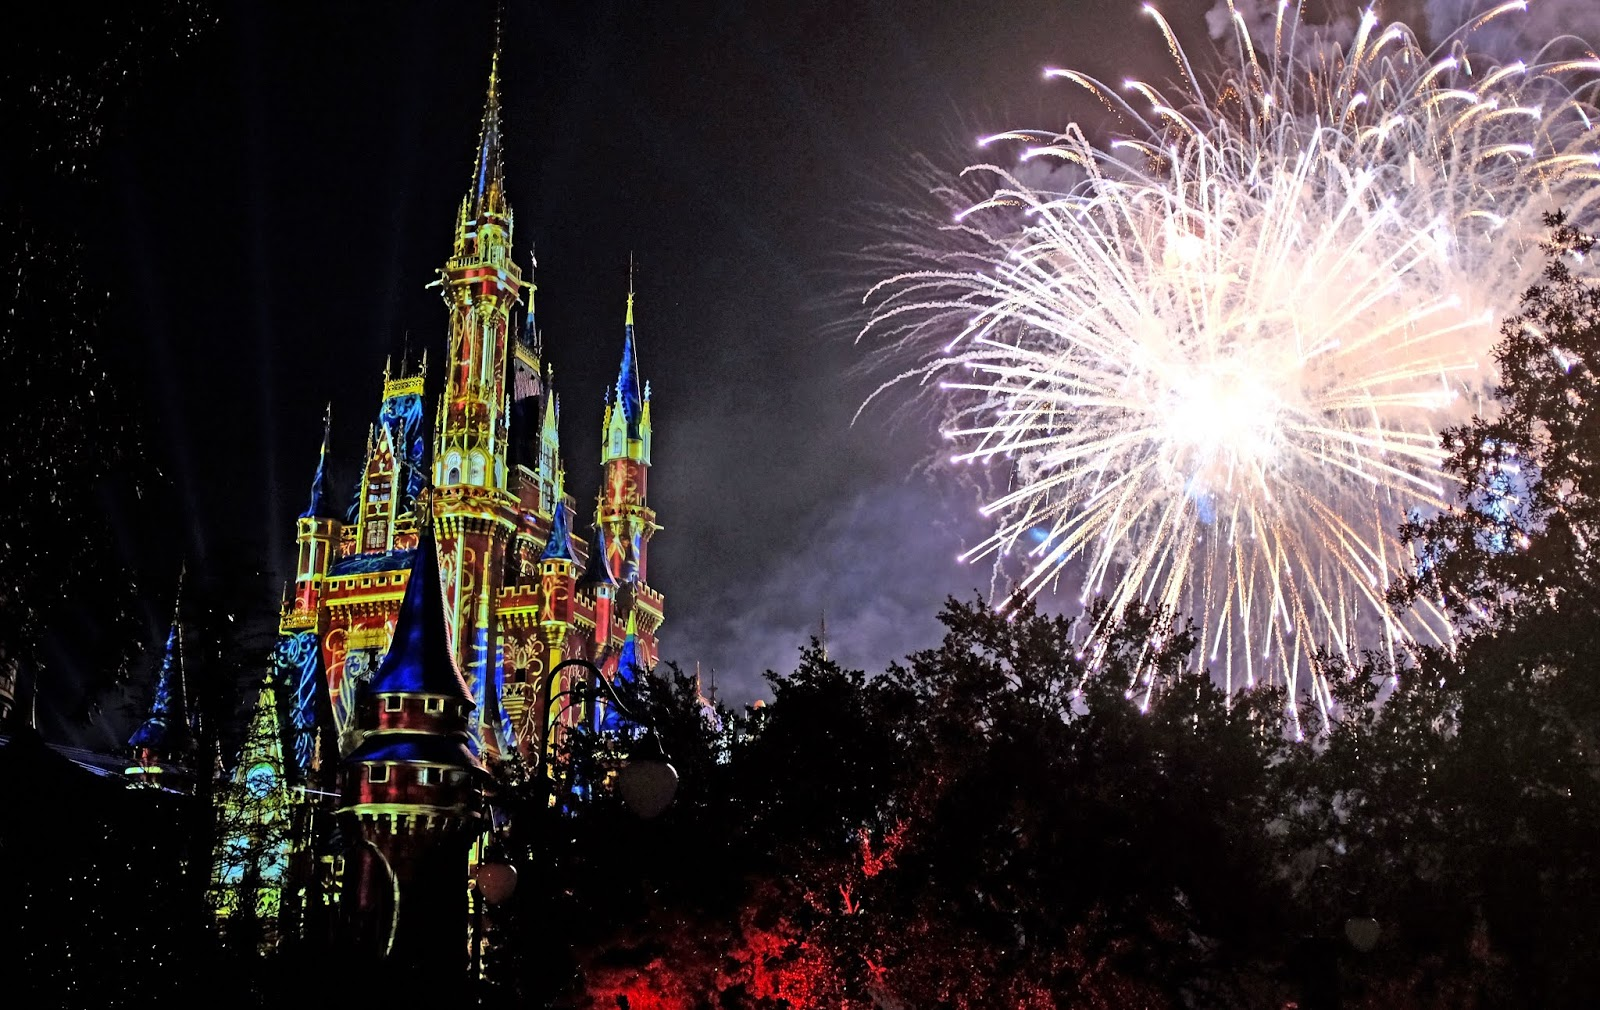 The Happily Ever After fireworks display at the Magic Kingdom, Walt Disney World